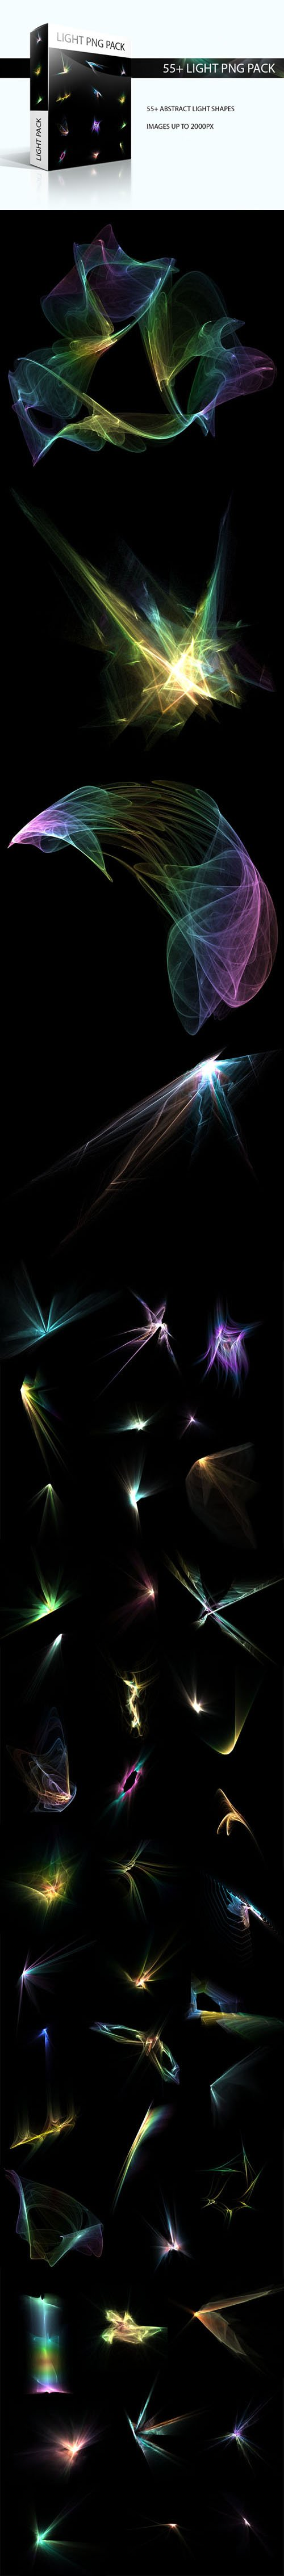 50+ Abstract Light Shapes PNG Pack